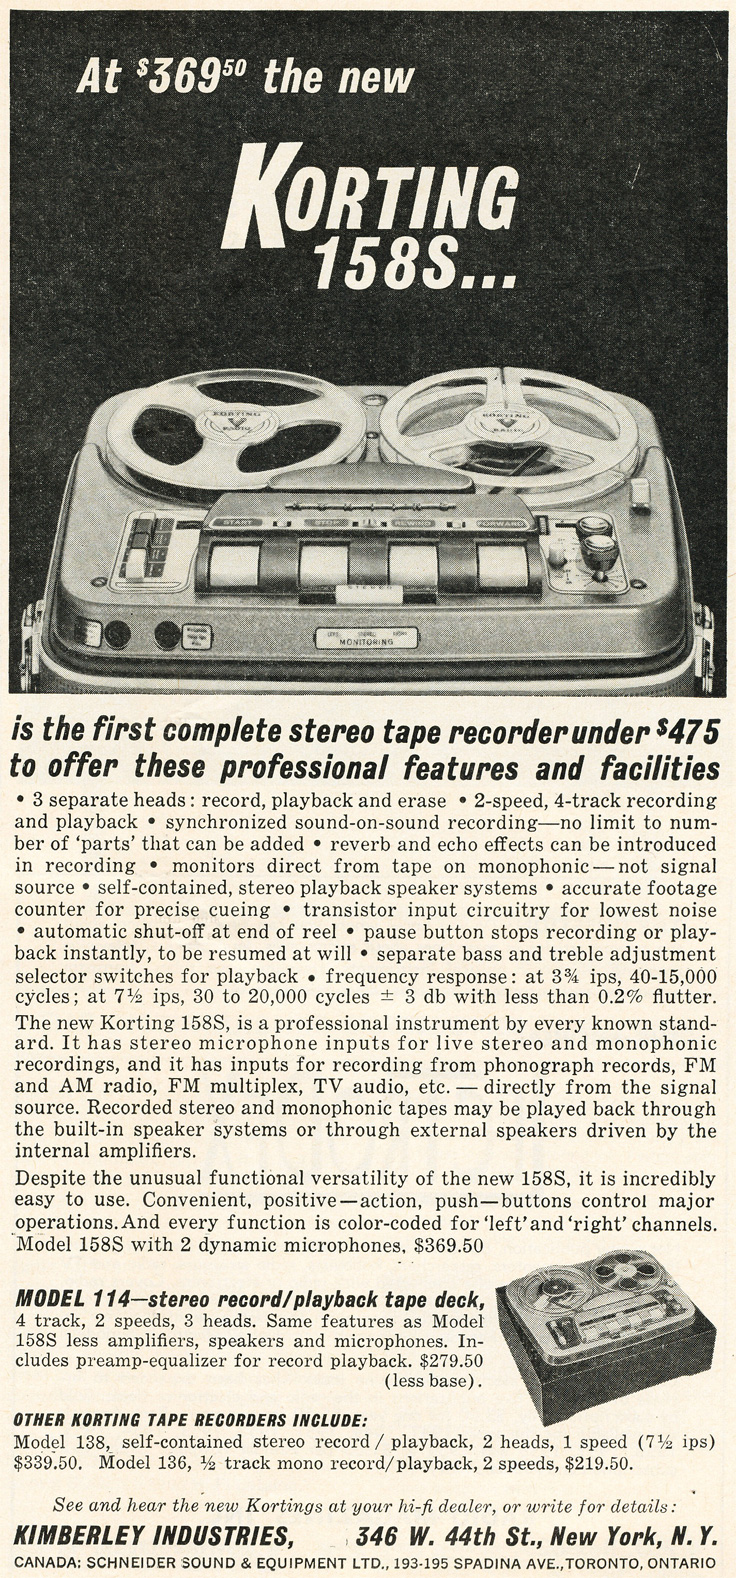 1961 ad for Korting reel to reel tape recorders in Phantom productions' vintage recording collection